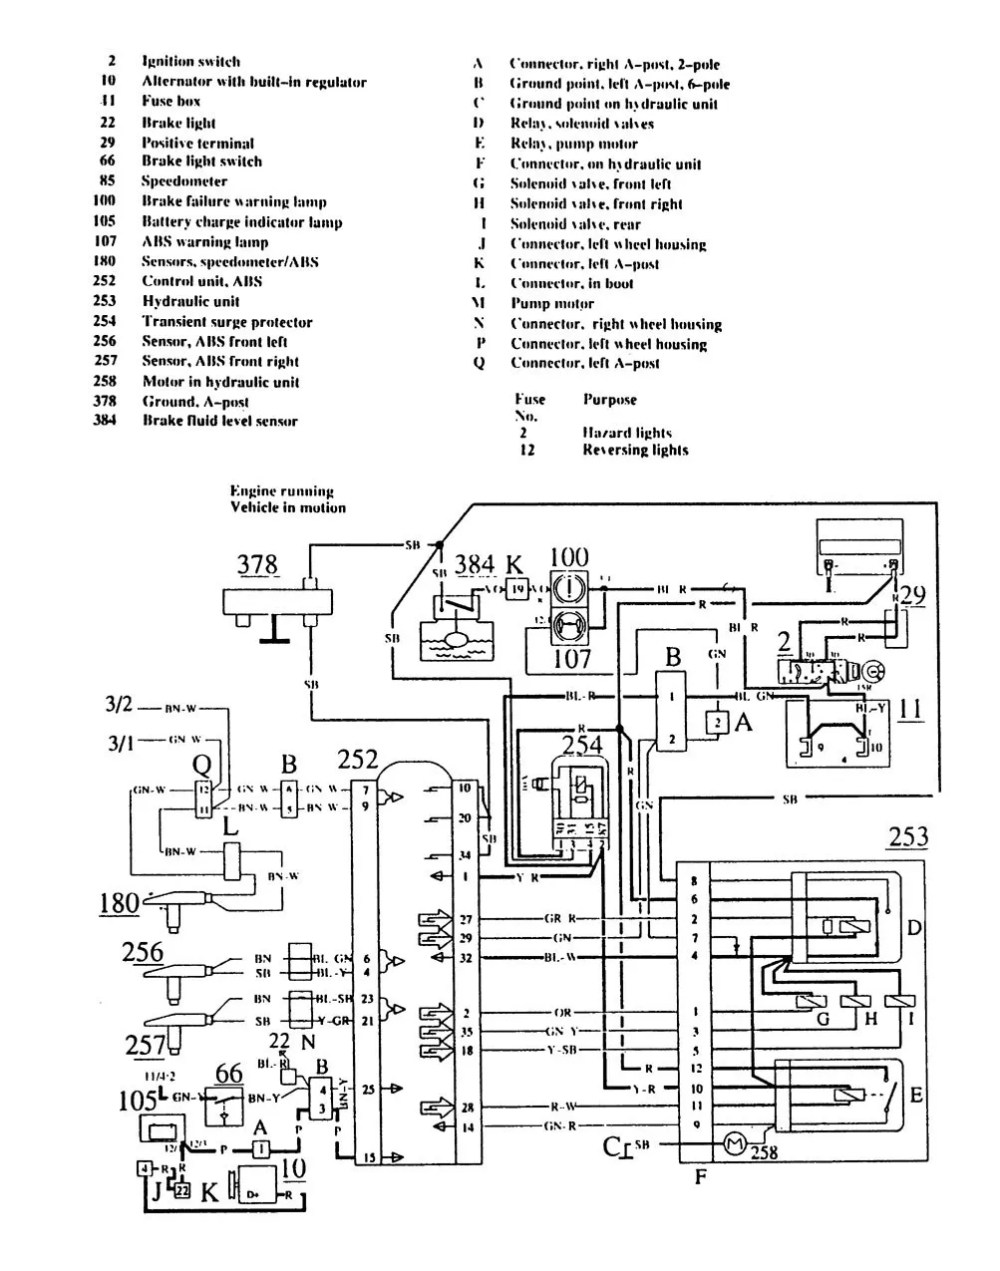 medium resolution of 91 volvo 740 fuse box diagram volvo 740 starter wiring 1990 volvo 240 tail light wiring diagram volvo fuel pump wiring diagram